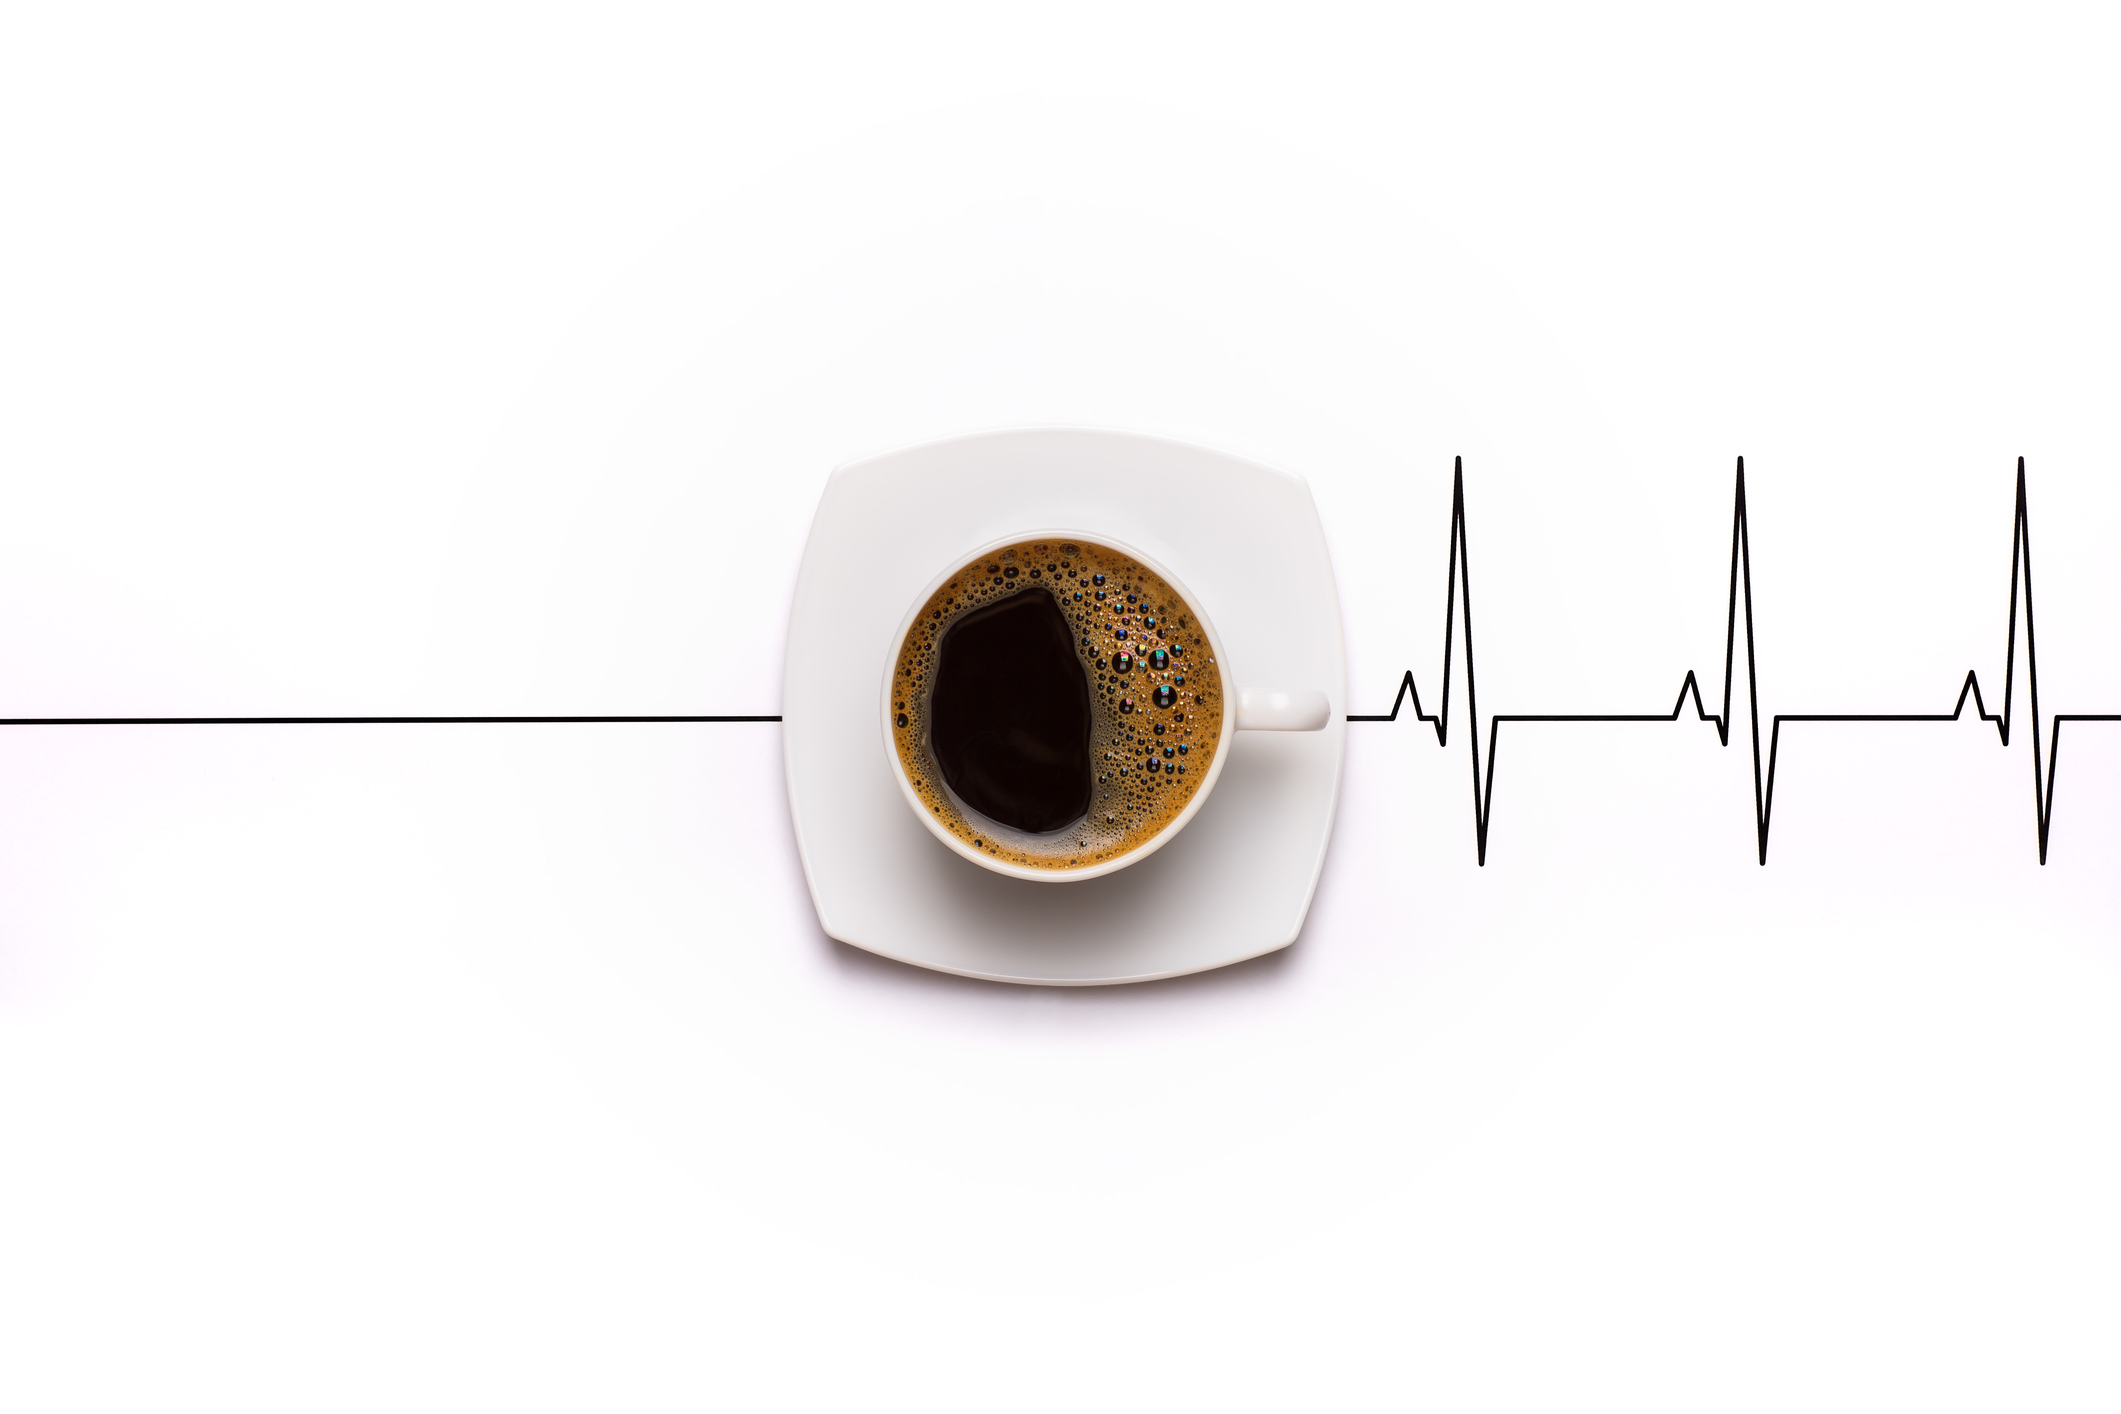 What I Did to Personalize My Caffeine Intake for Sport Performance and Heart Health